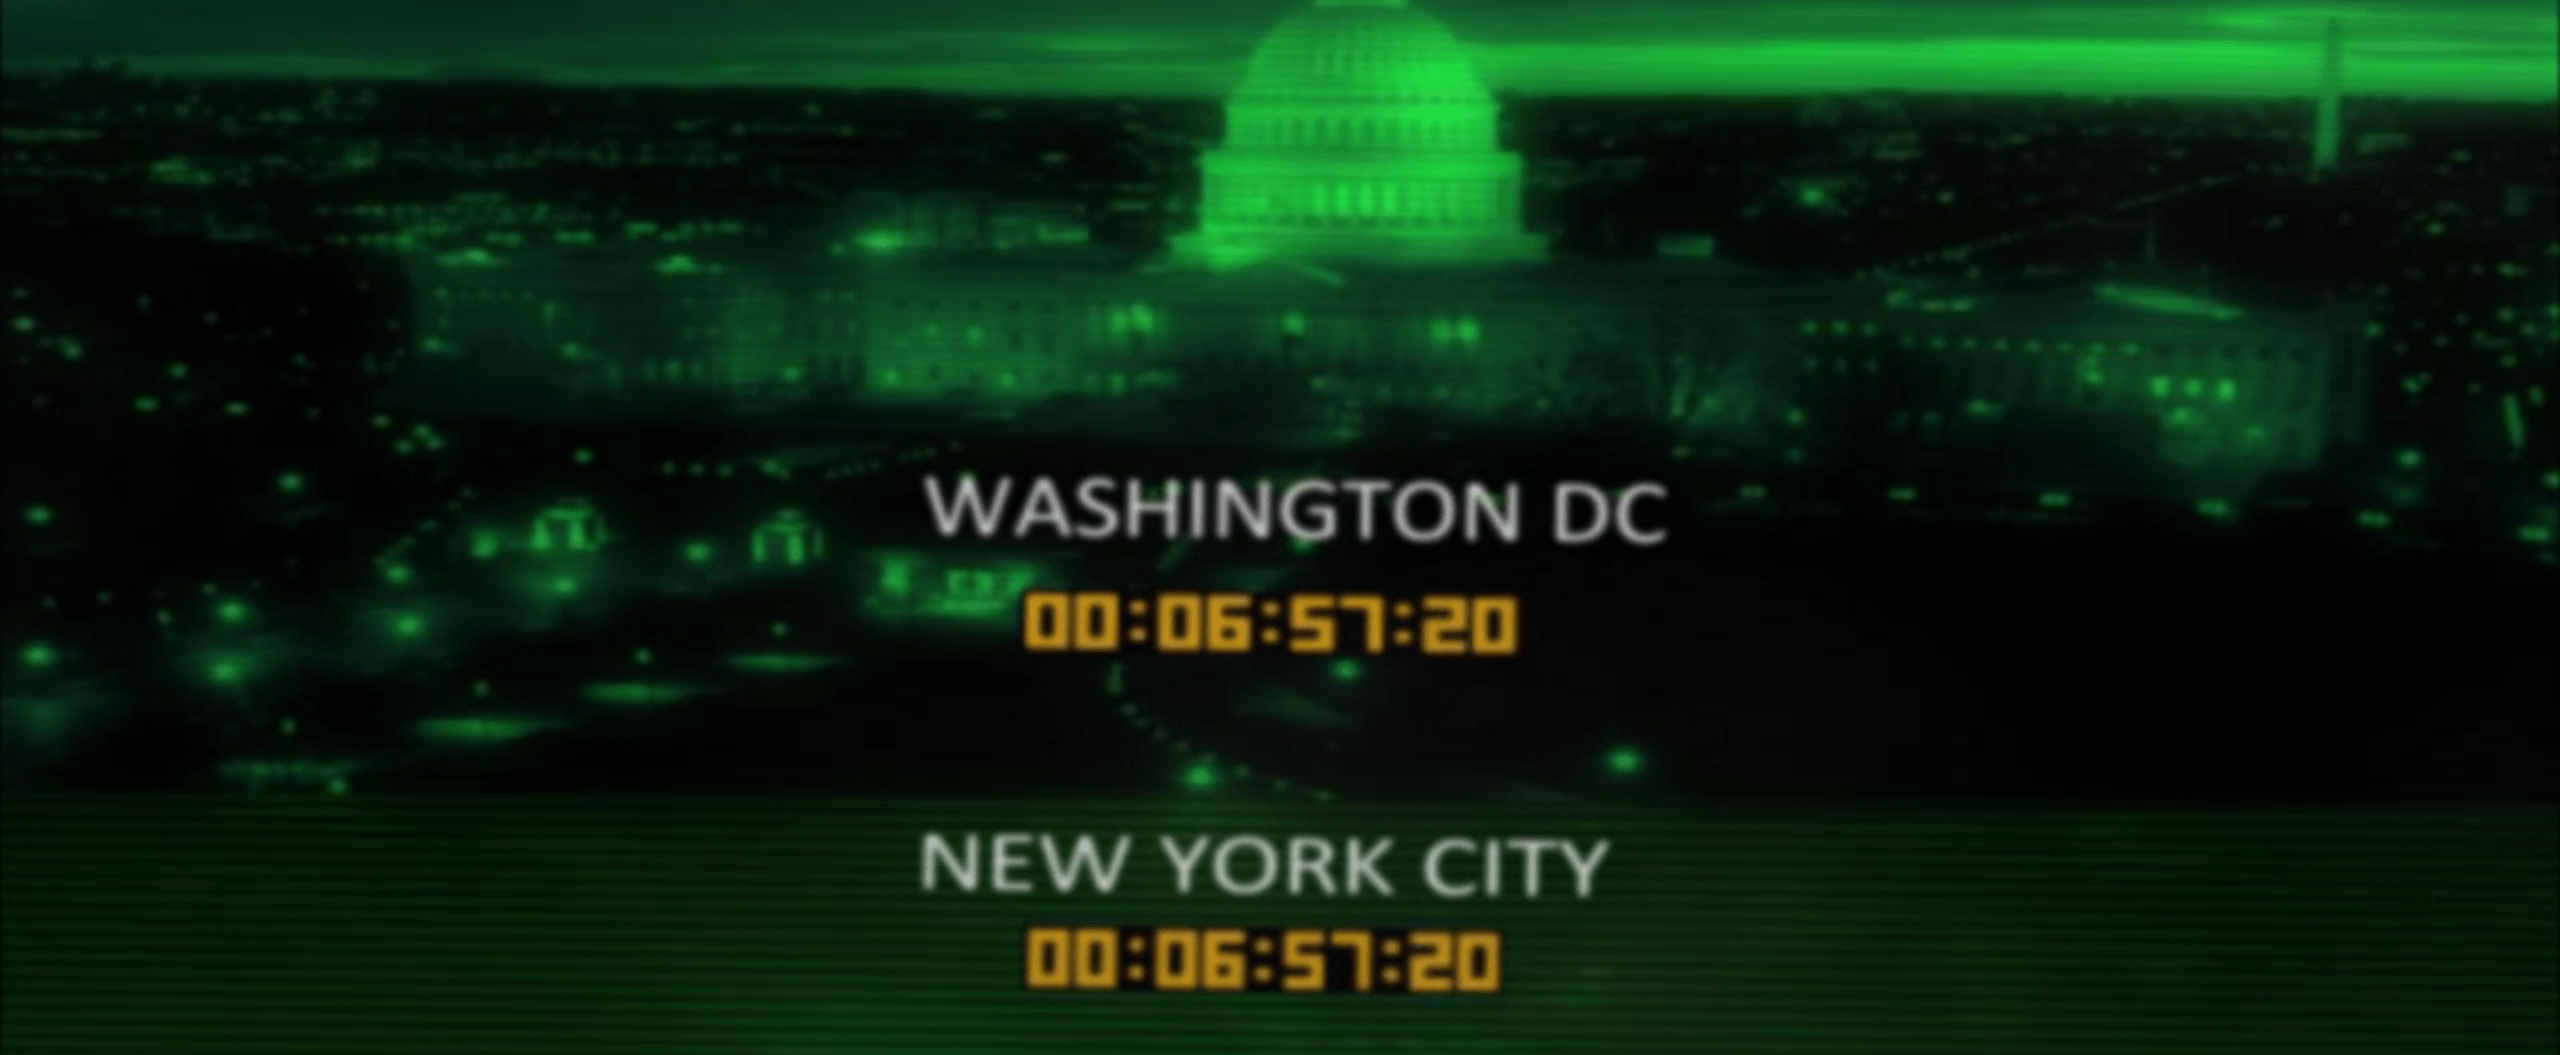 Screen showing countodwns labelled Washington DC and New York City